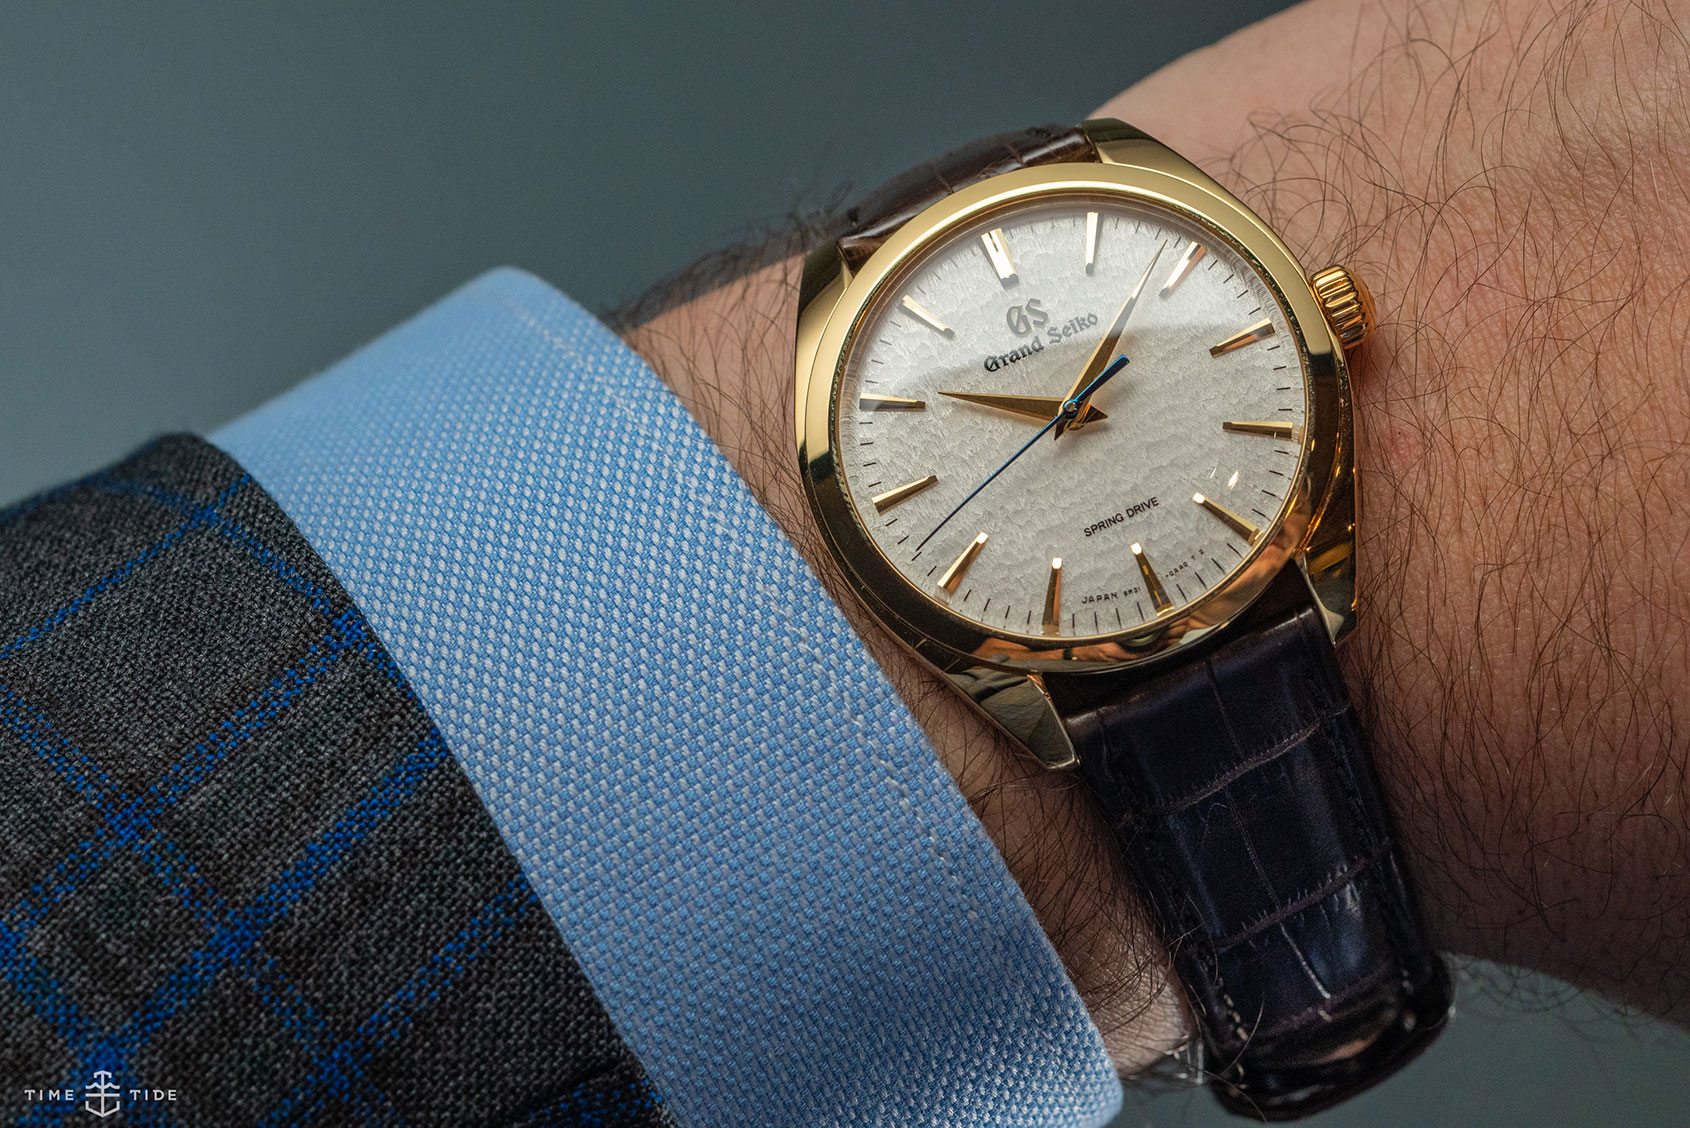 11 of the best time-only watches from 2019